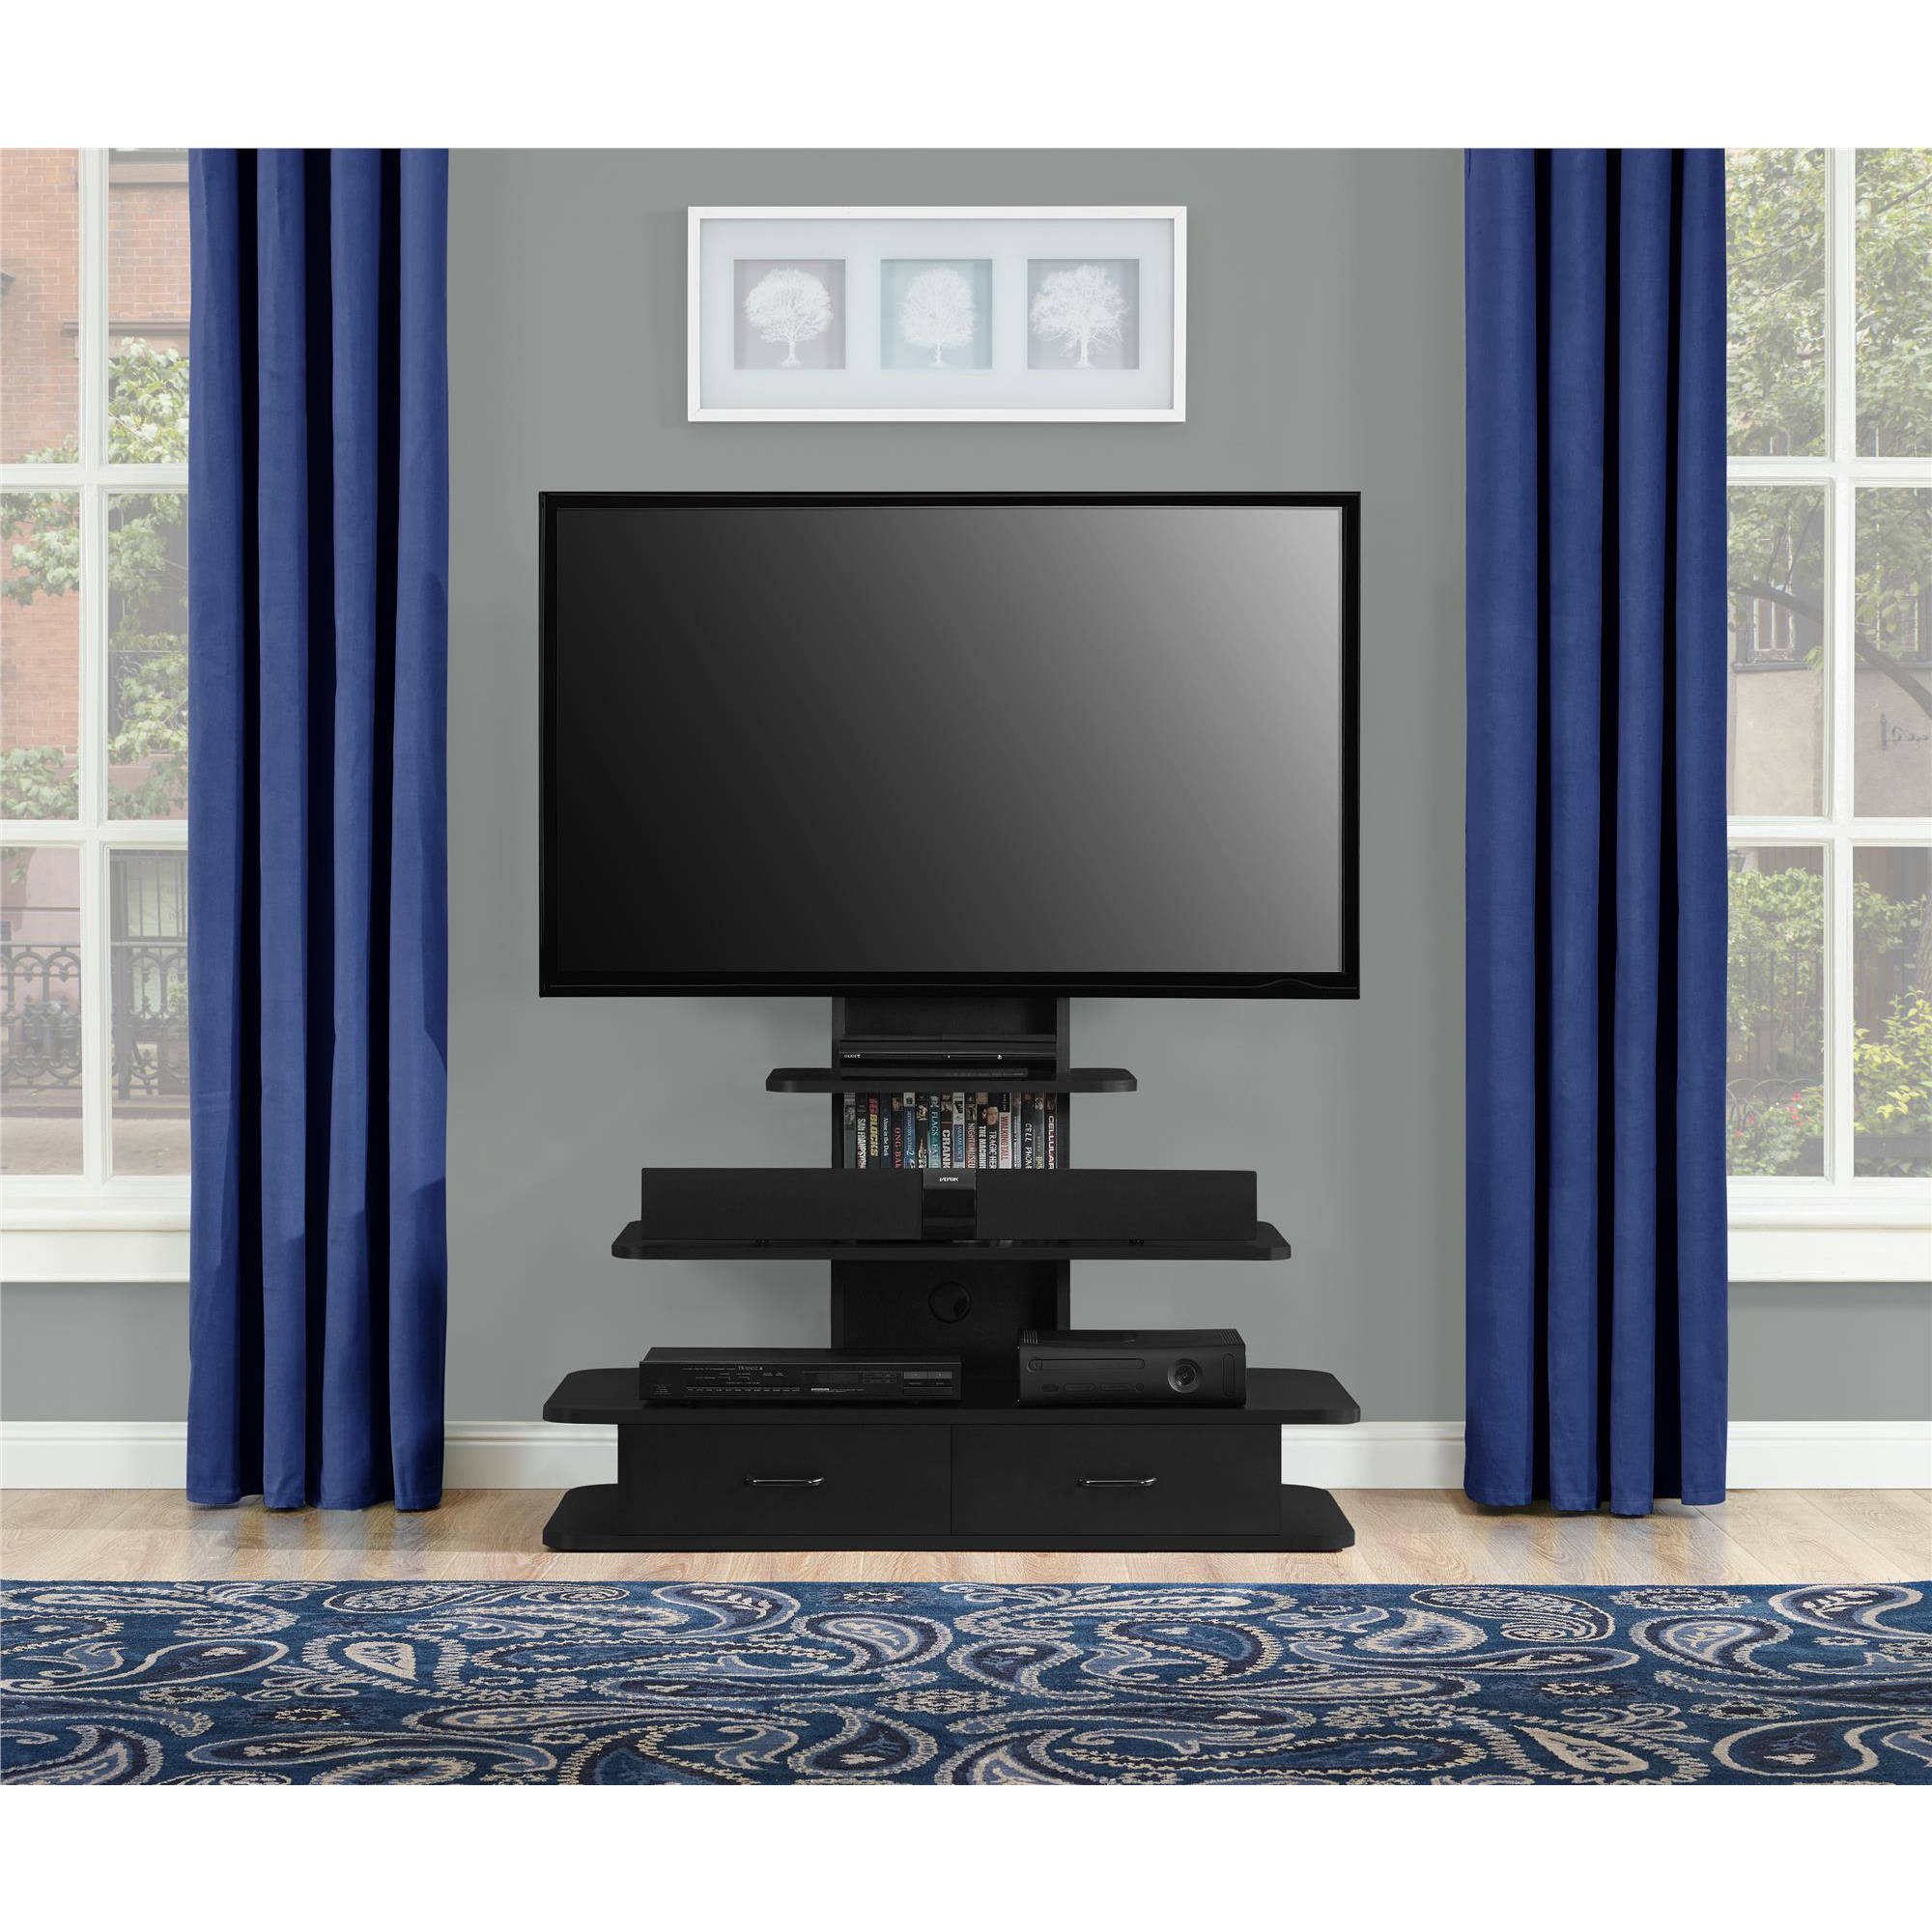 Ameriwood Home Galaxy XL TV Stand With Drawers For TVs Up